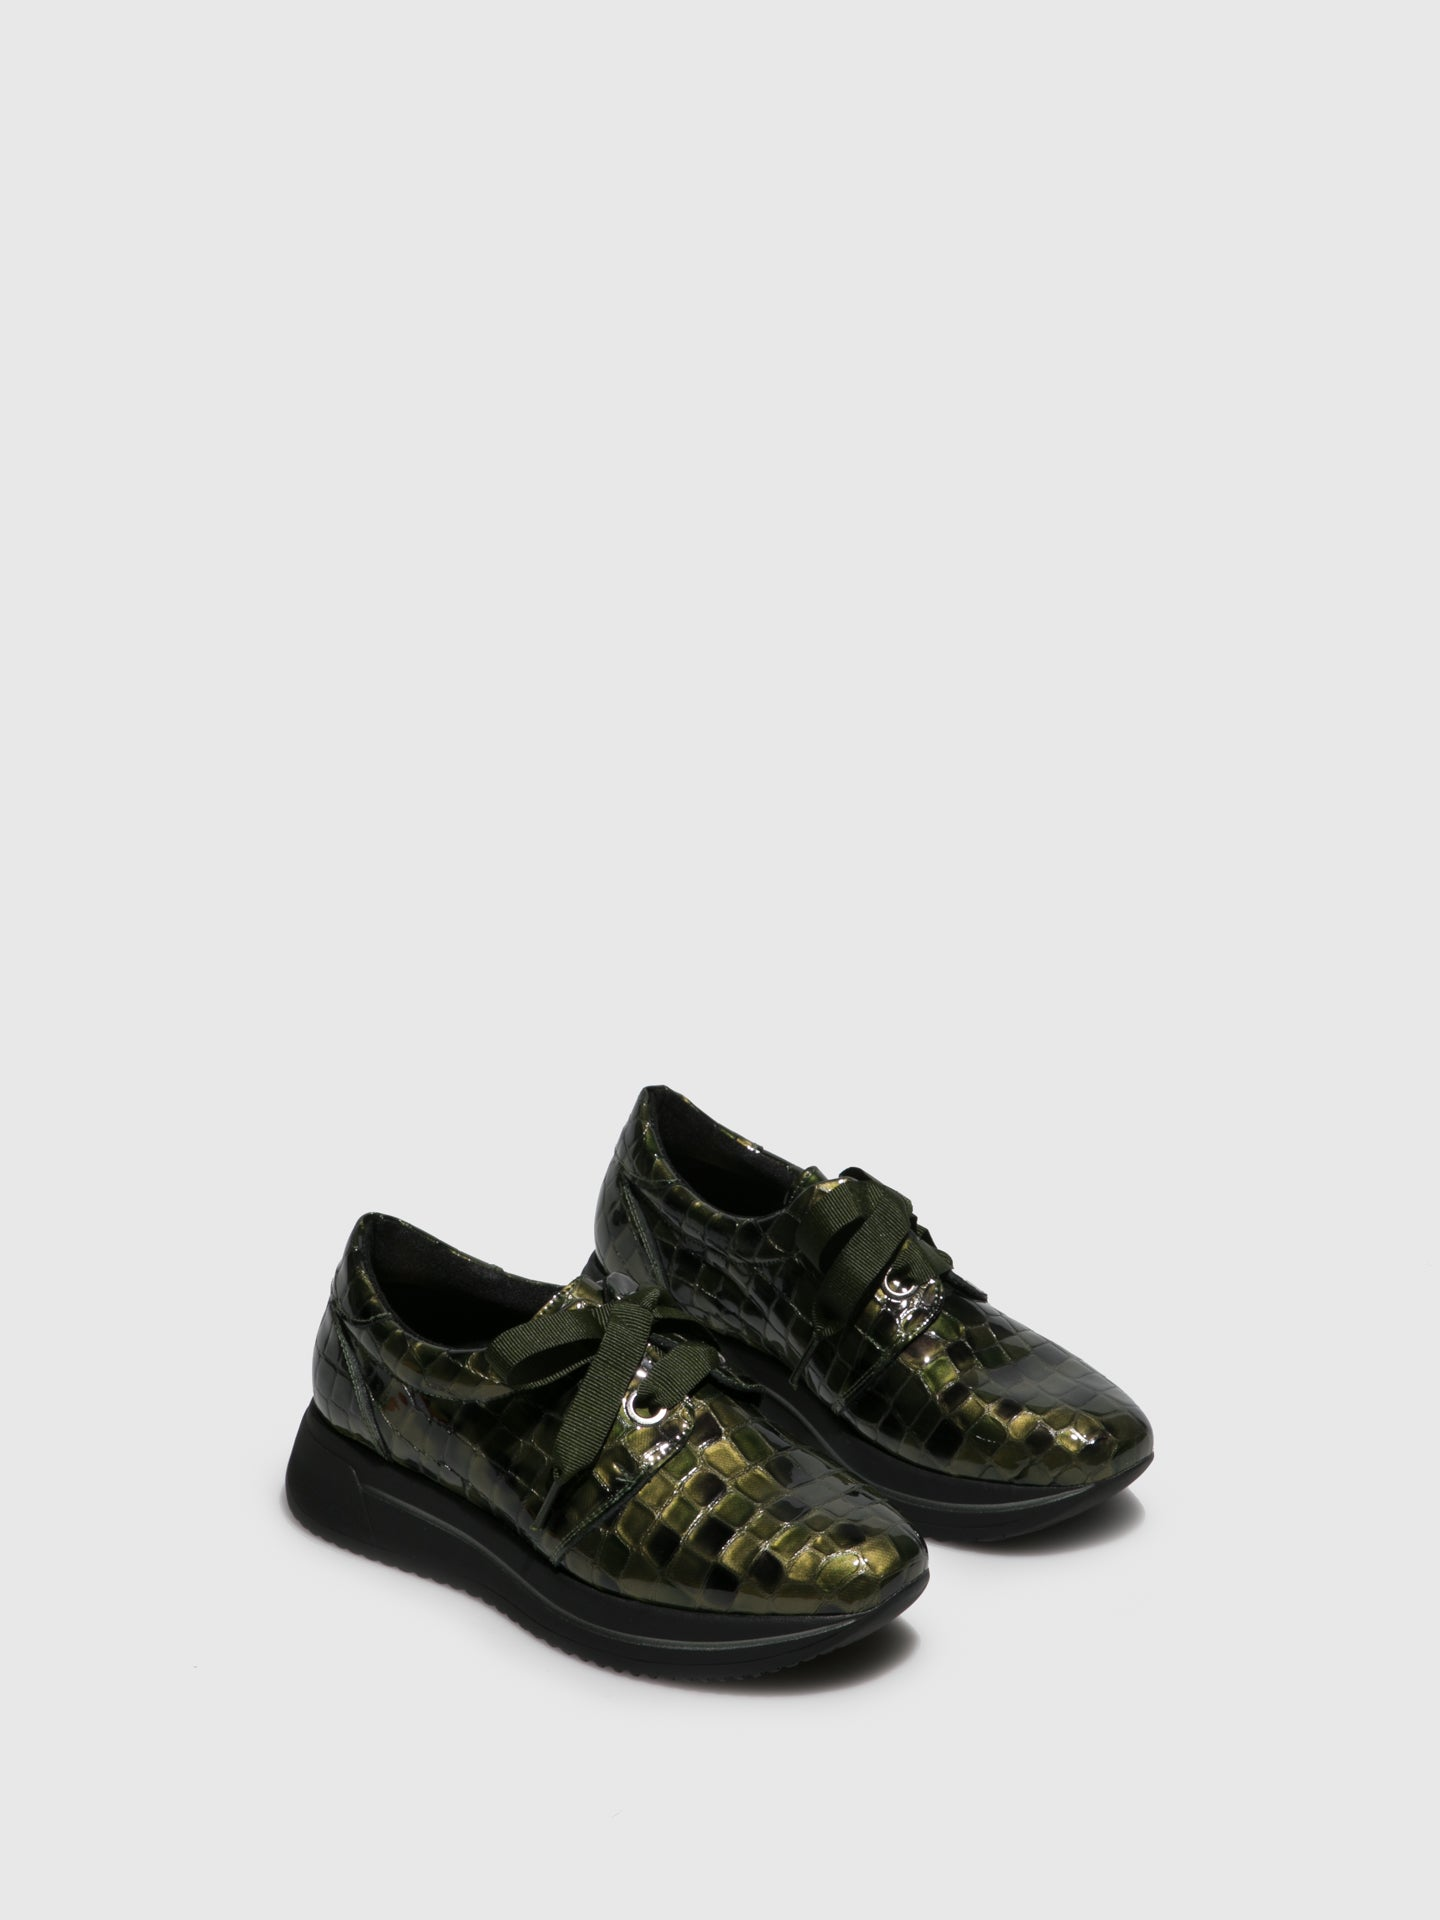 Marila Shoes Green Black Platform Trainers